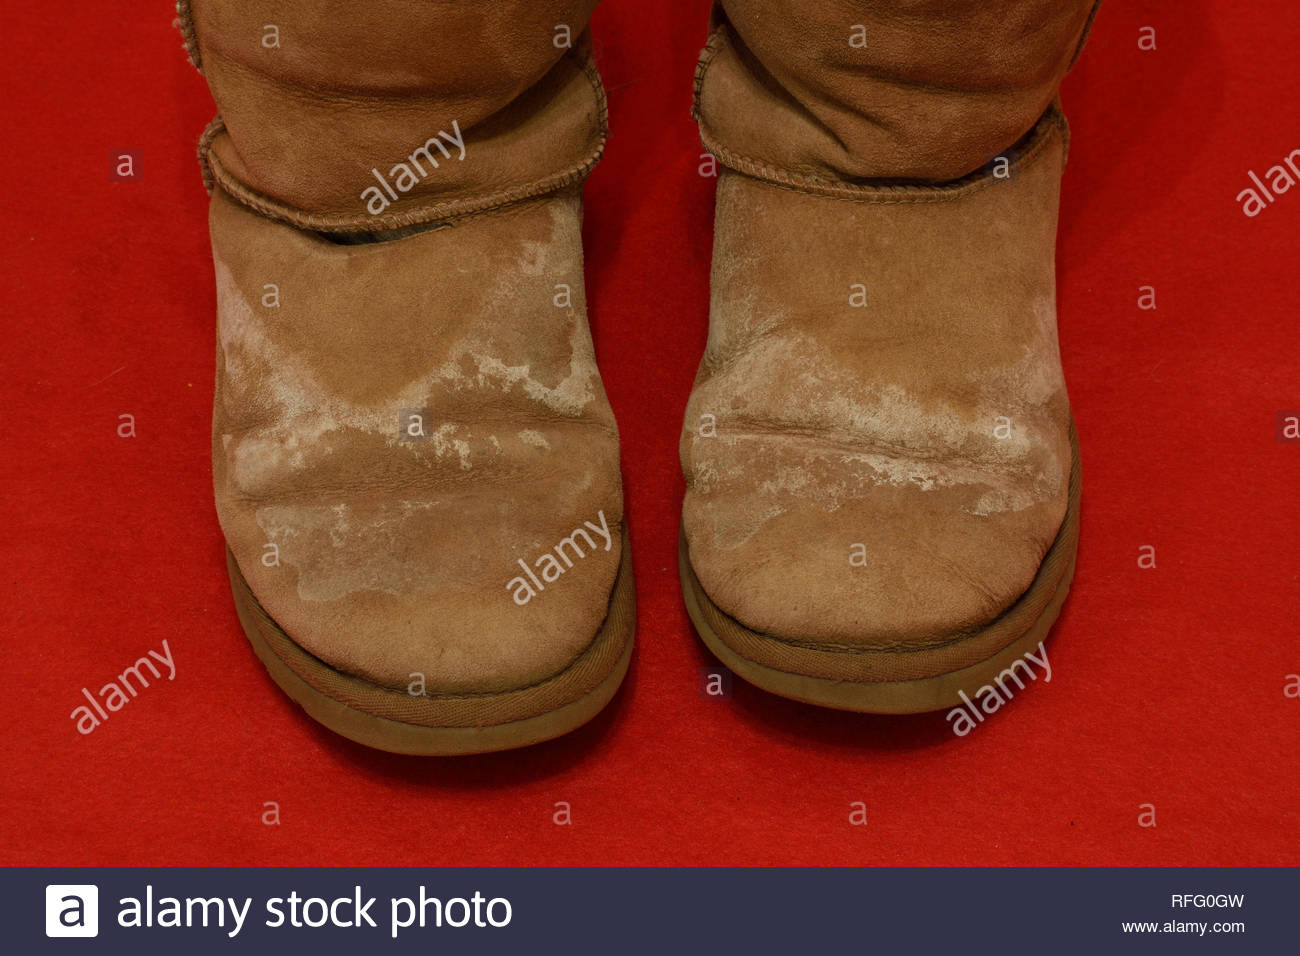 cdd5c224697 Need to remove salt stains from UGG Boots. Womens UGGs with salt ...